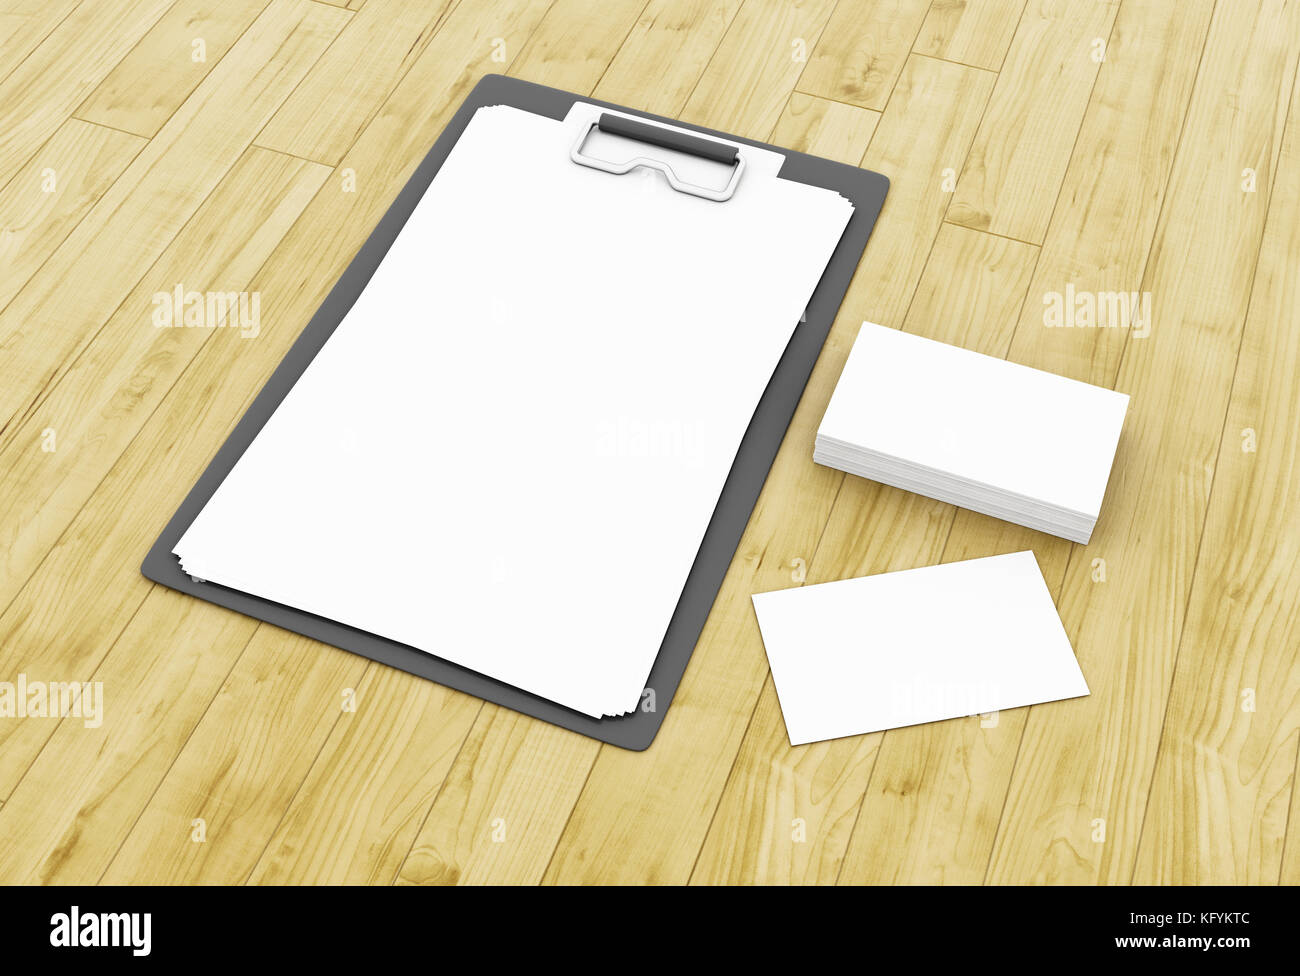 3d illustration. Business cards and blank notepads on wooden table ...